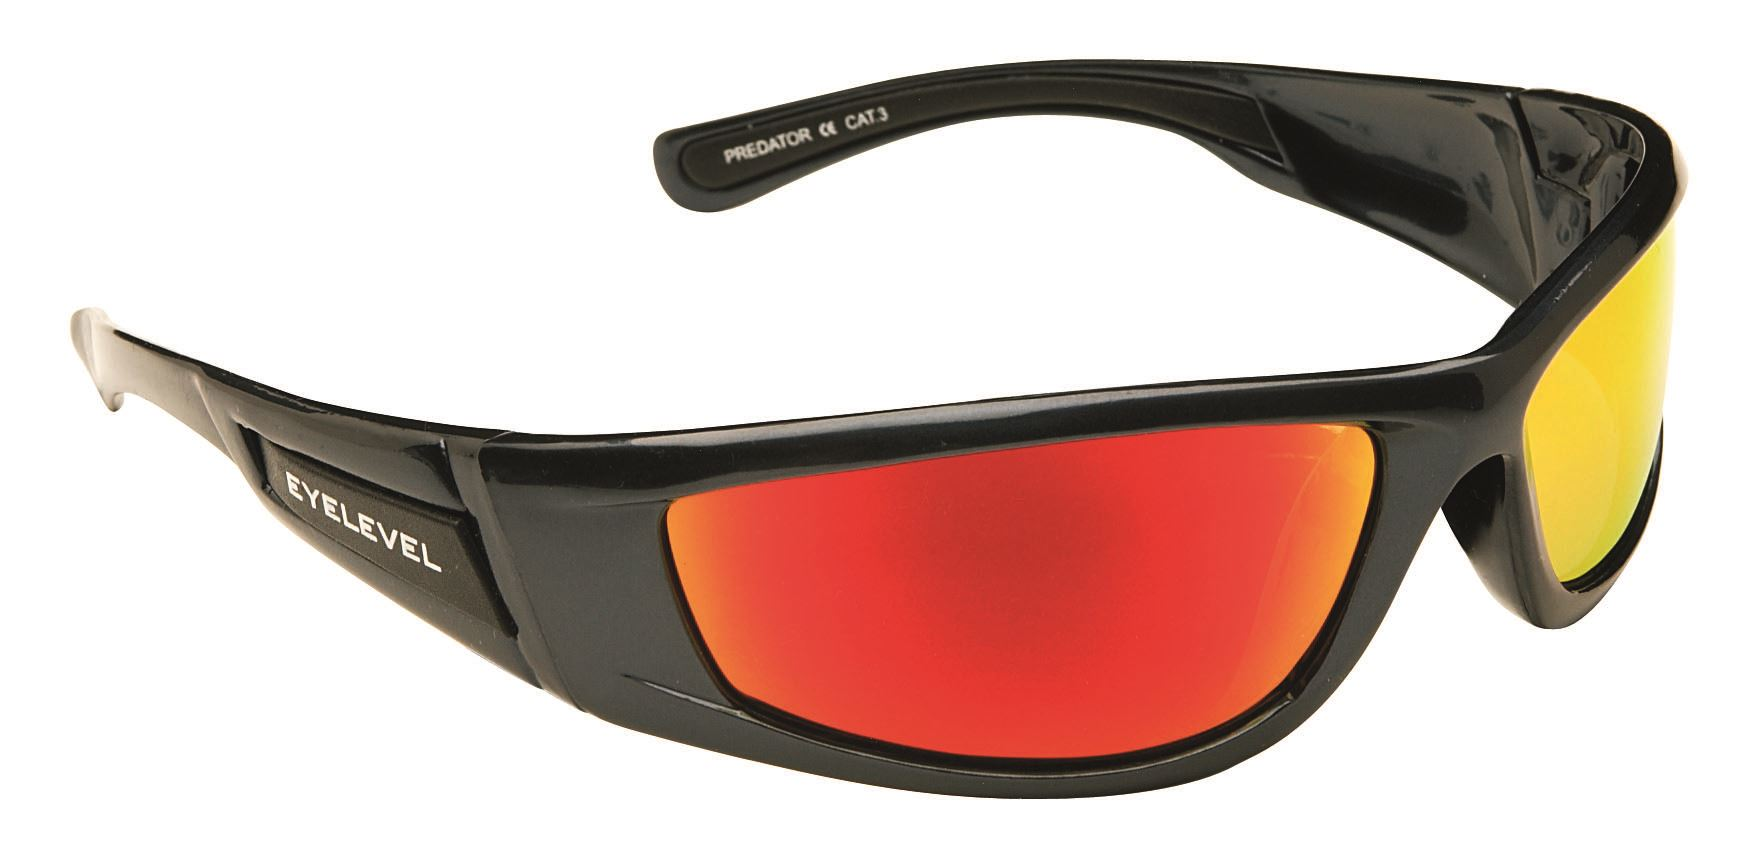 Predator Sunglasses - Red Lens